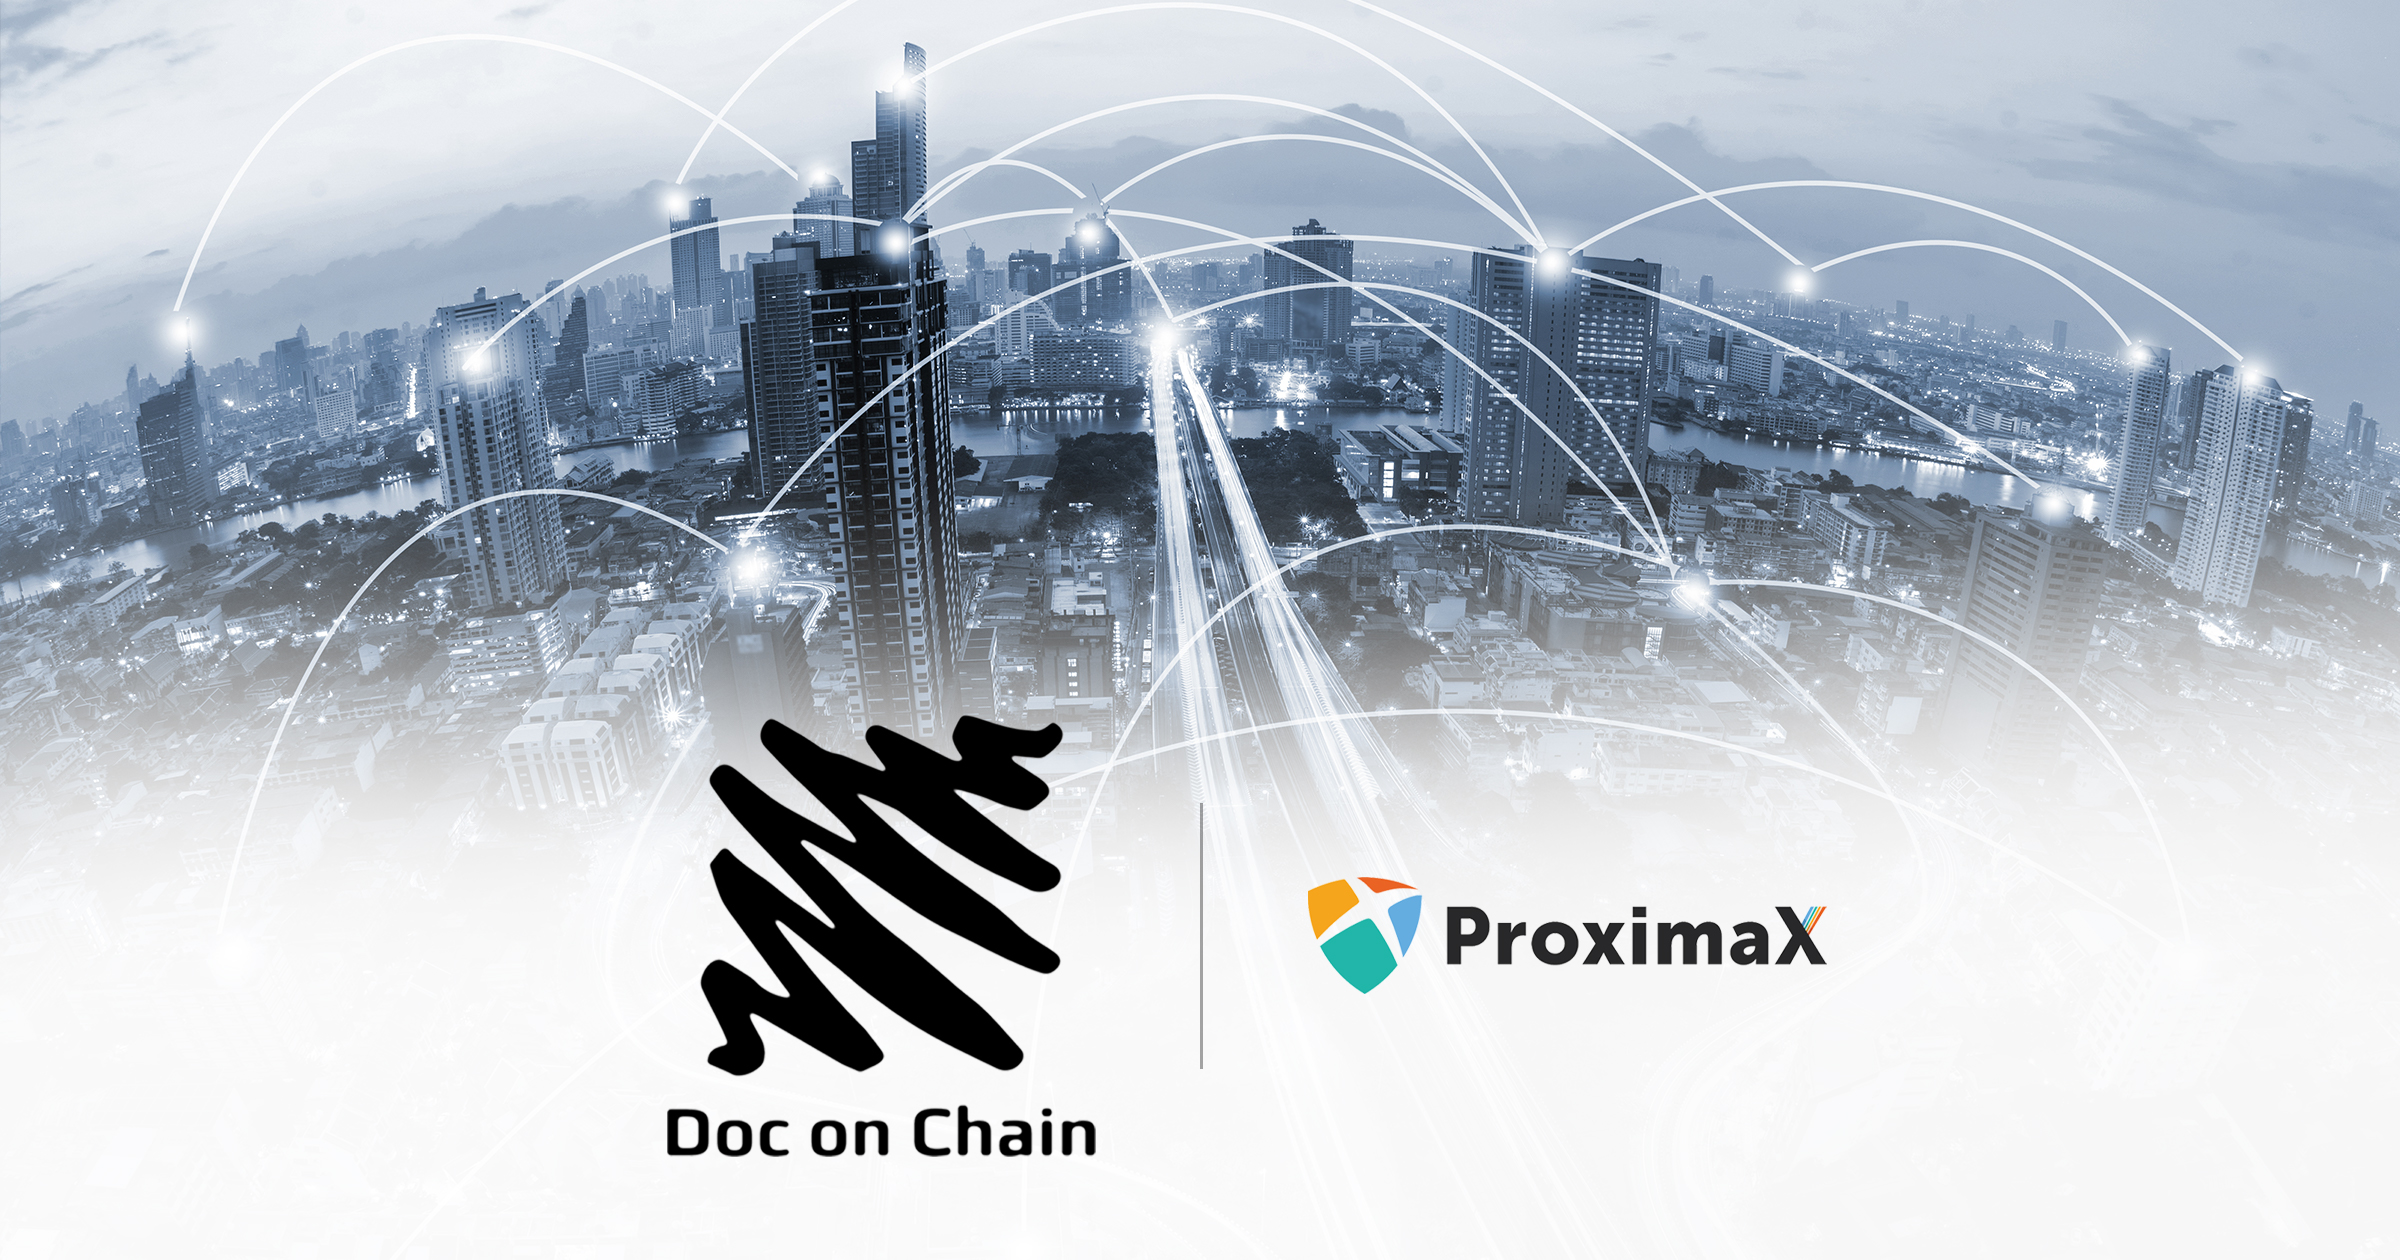 Doc On Chain launches a tamper-proof digital signature solution, powered by the ProximaX blockchain